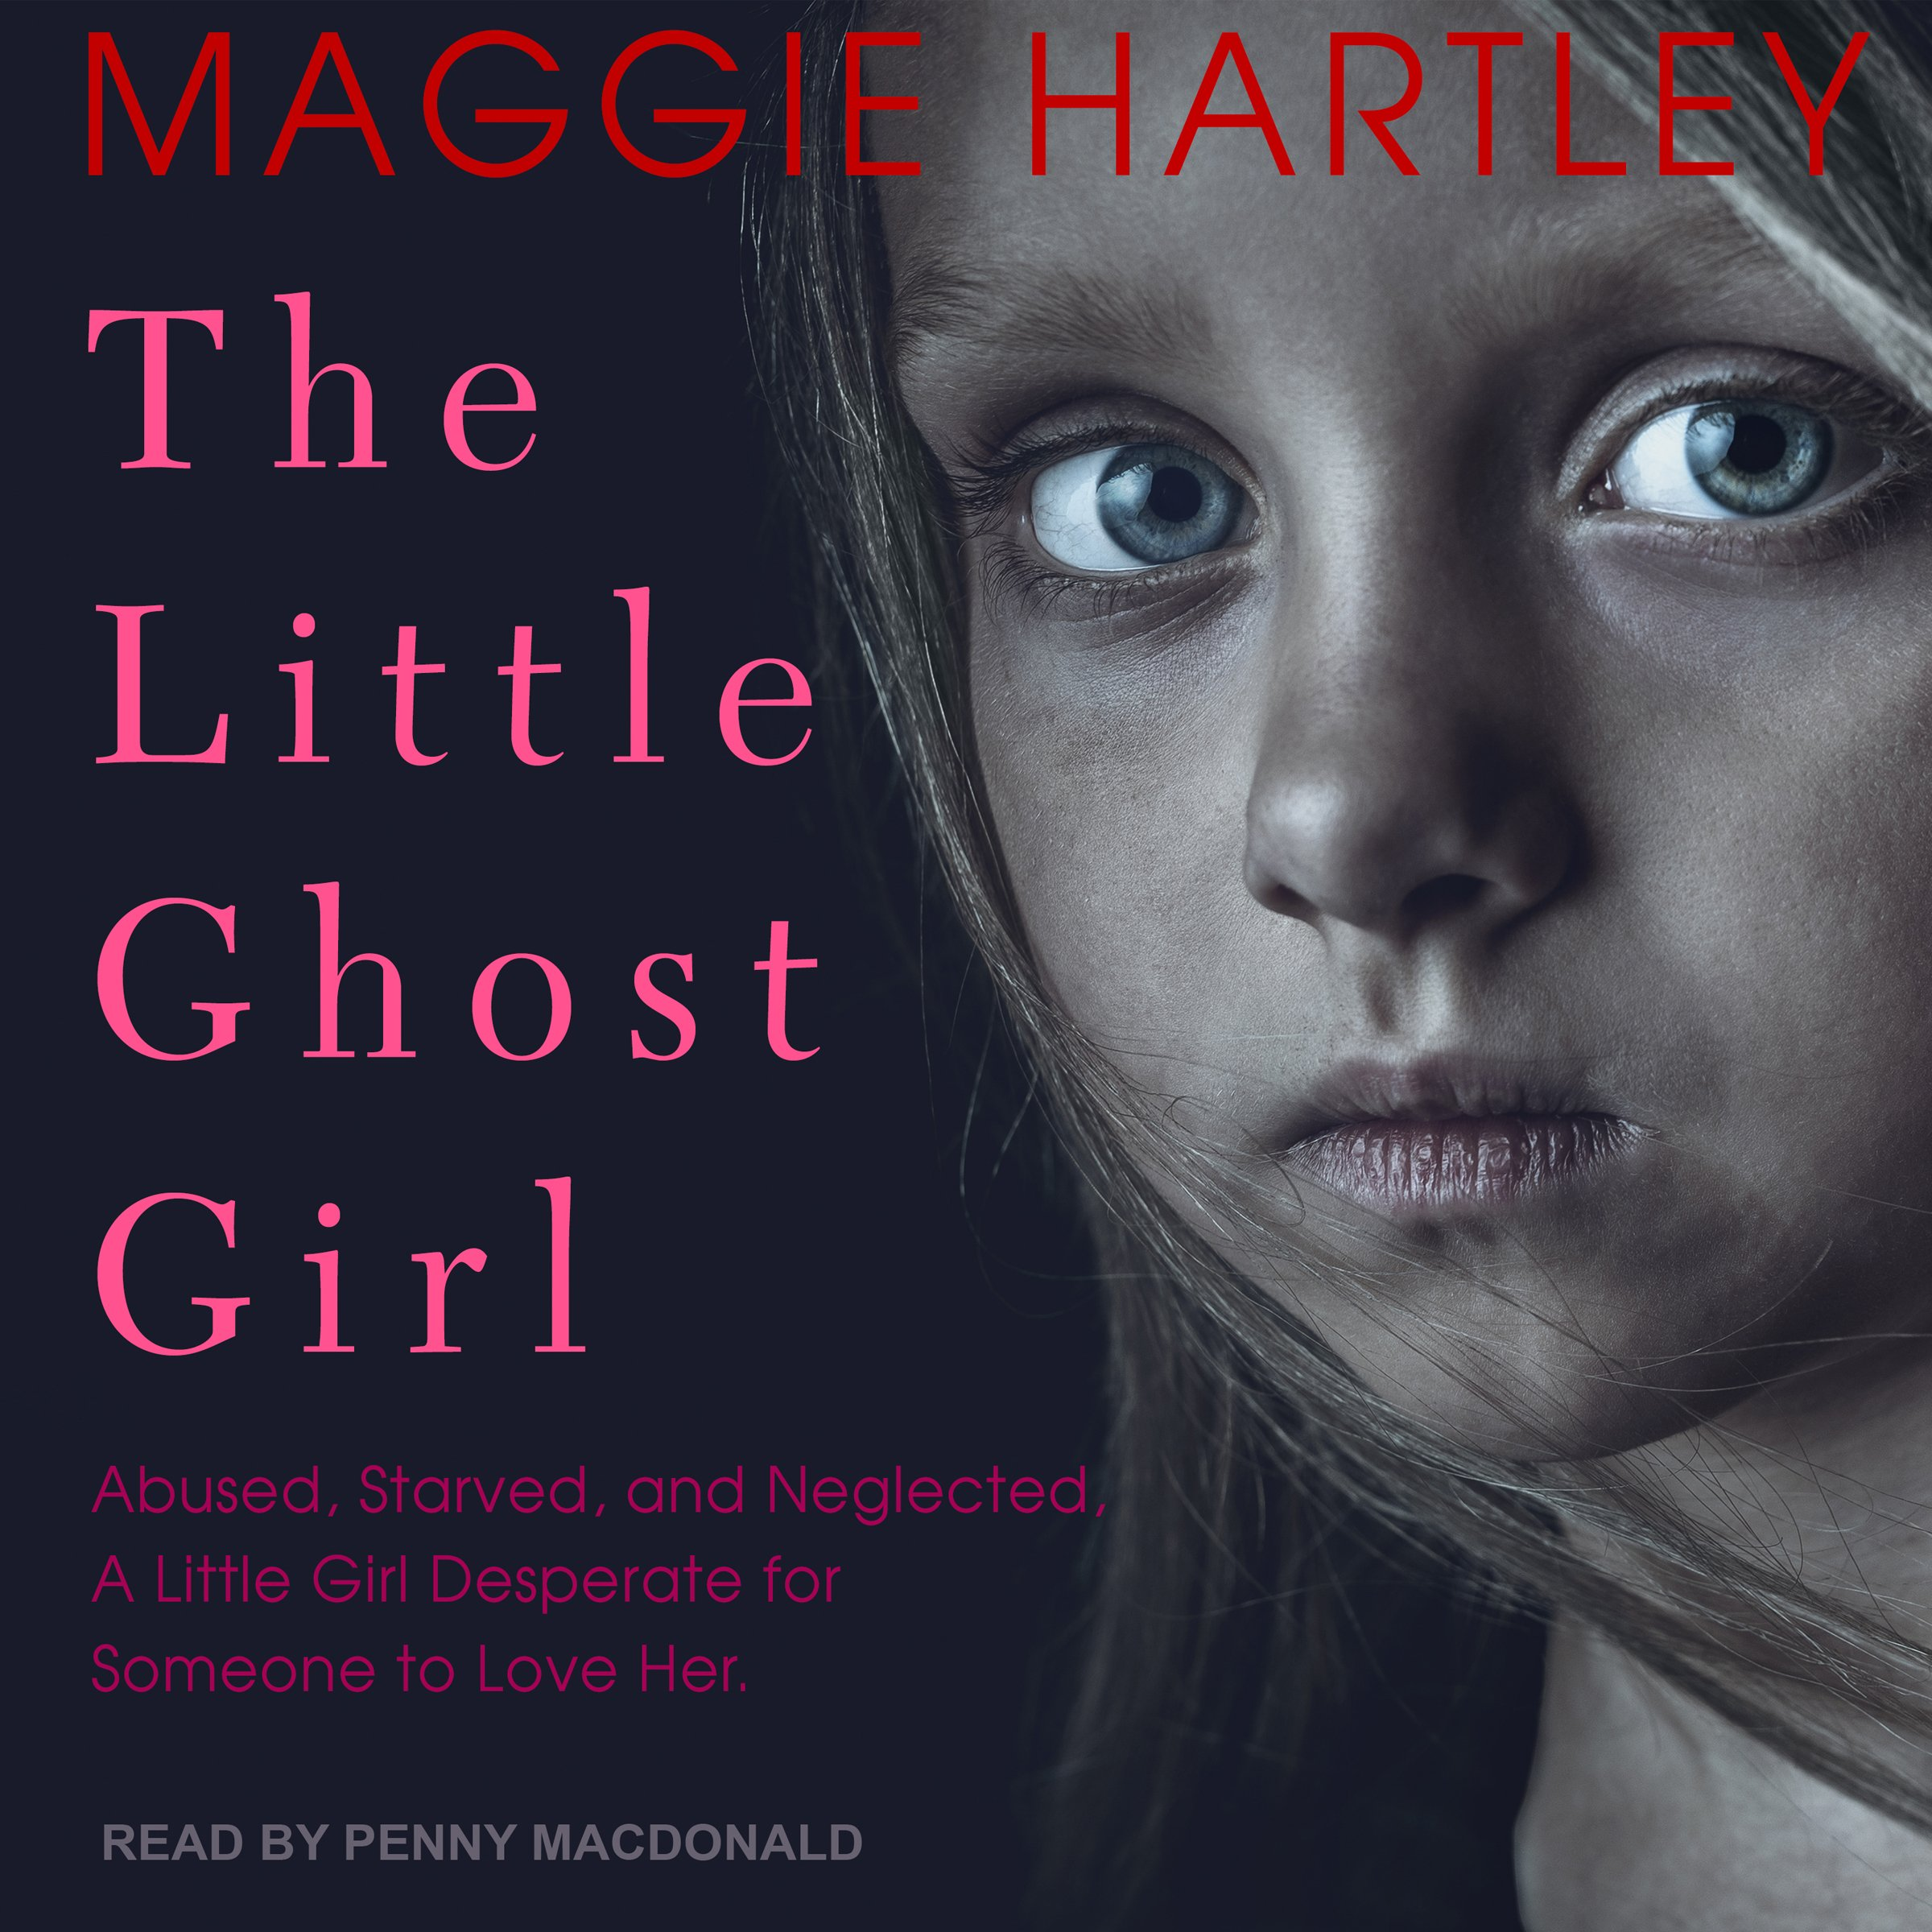 The Little Ghost Girl: Abused, Starved, and Neglected, a Little Girl Desperate for Someone to Love Her